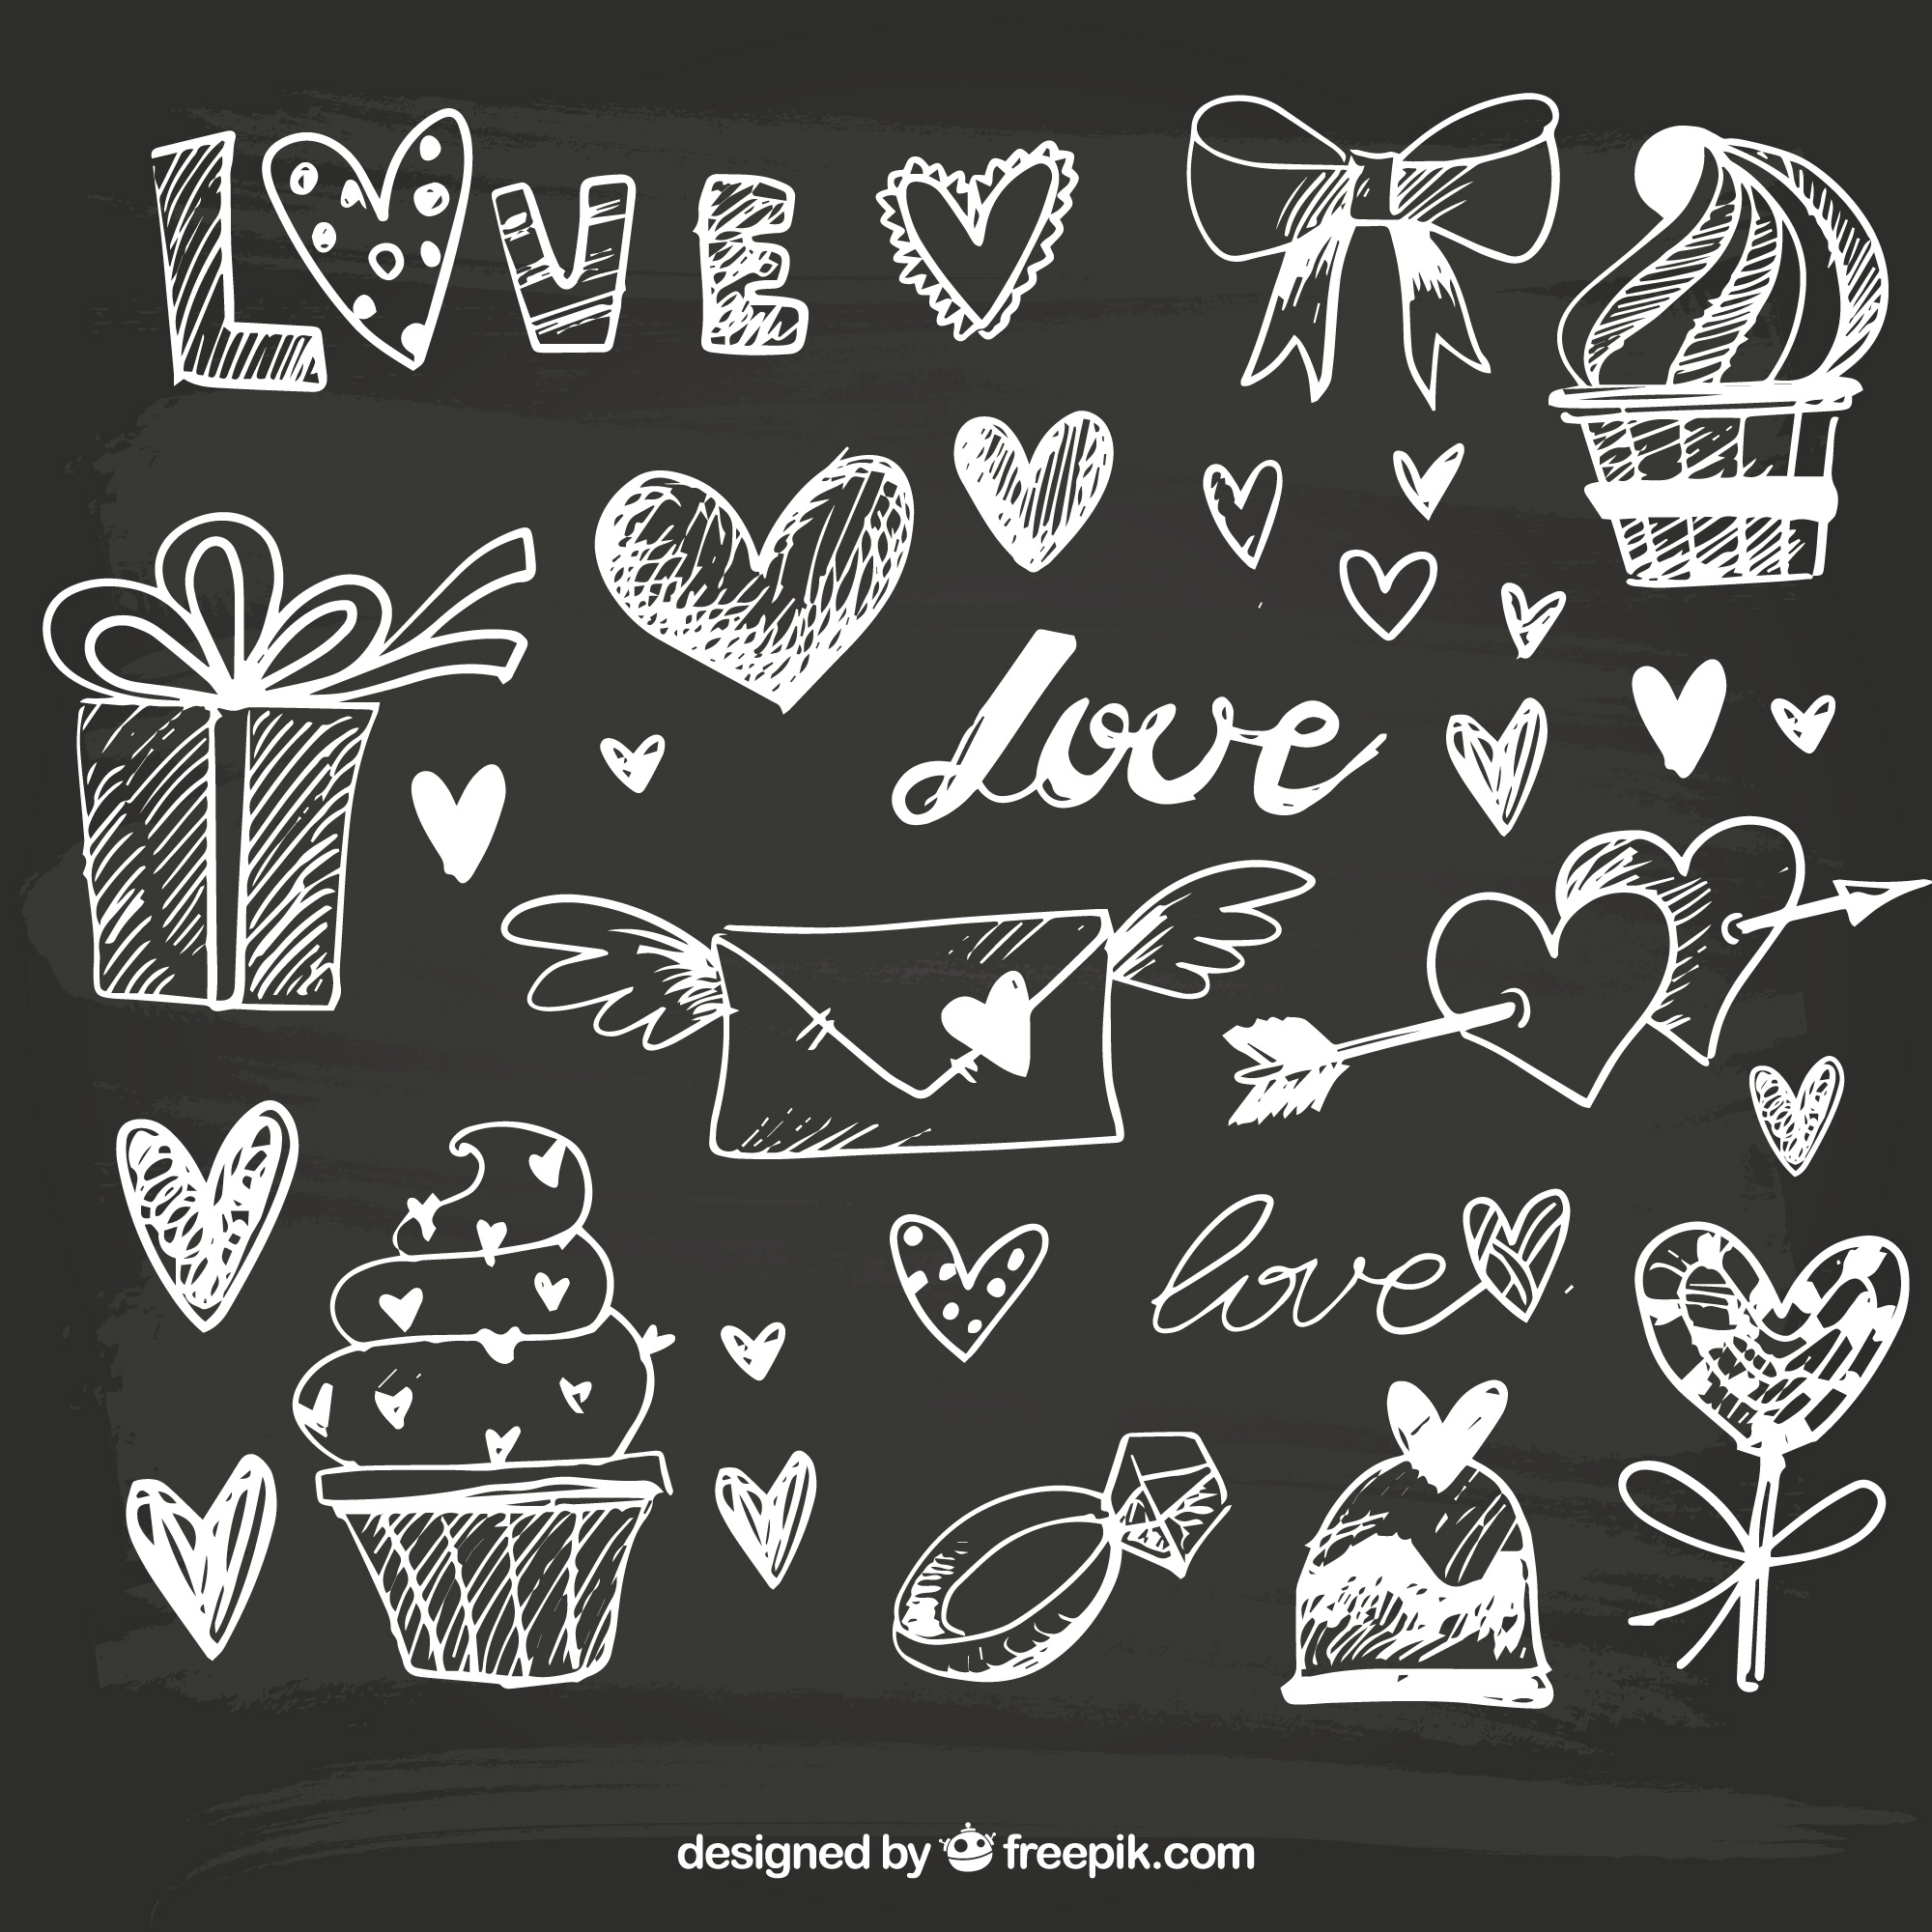 Great hand-drawn objects for valentine's day